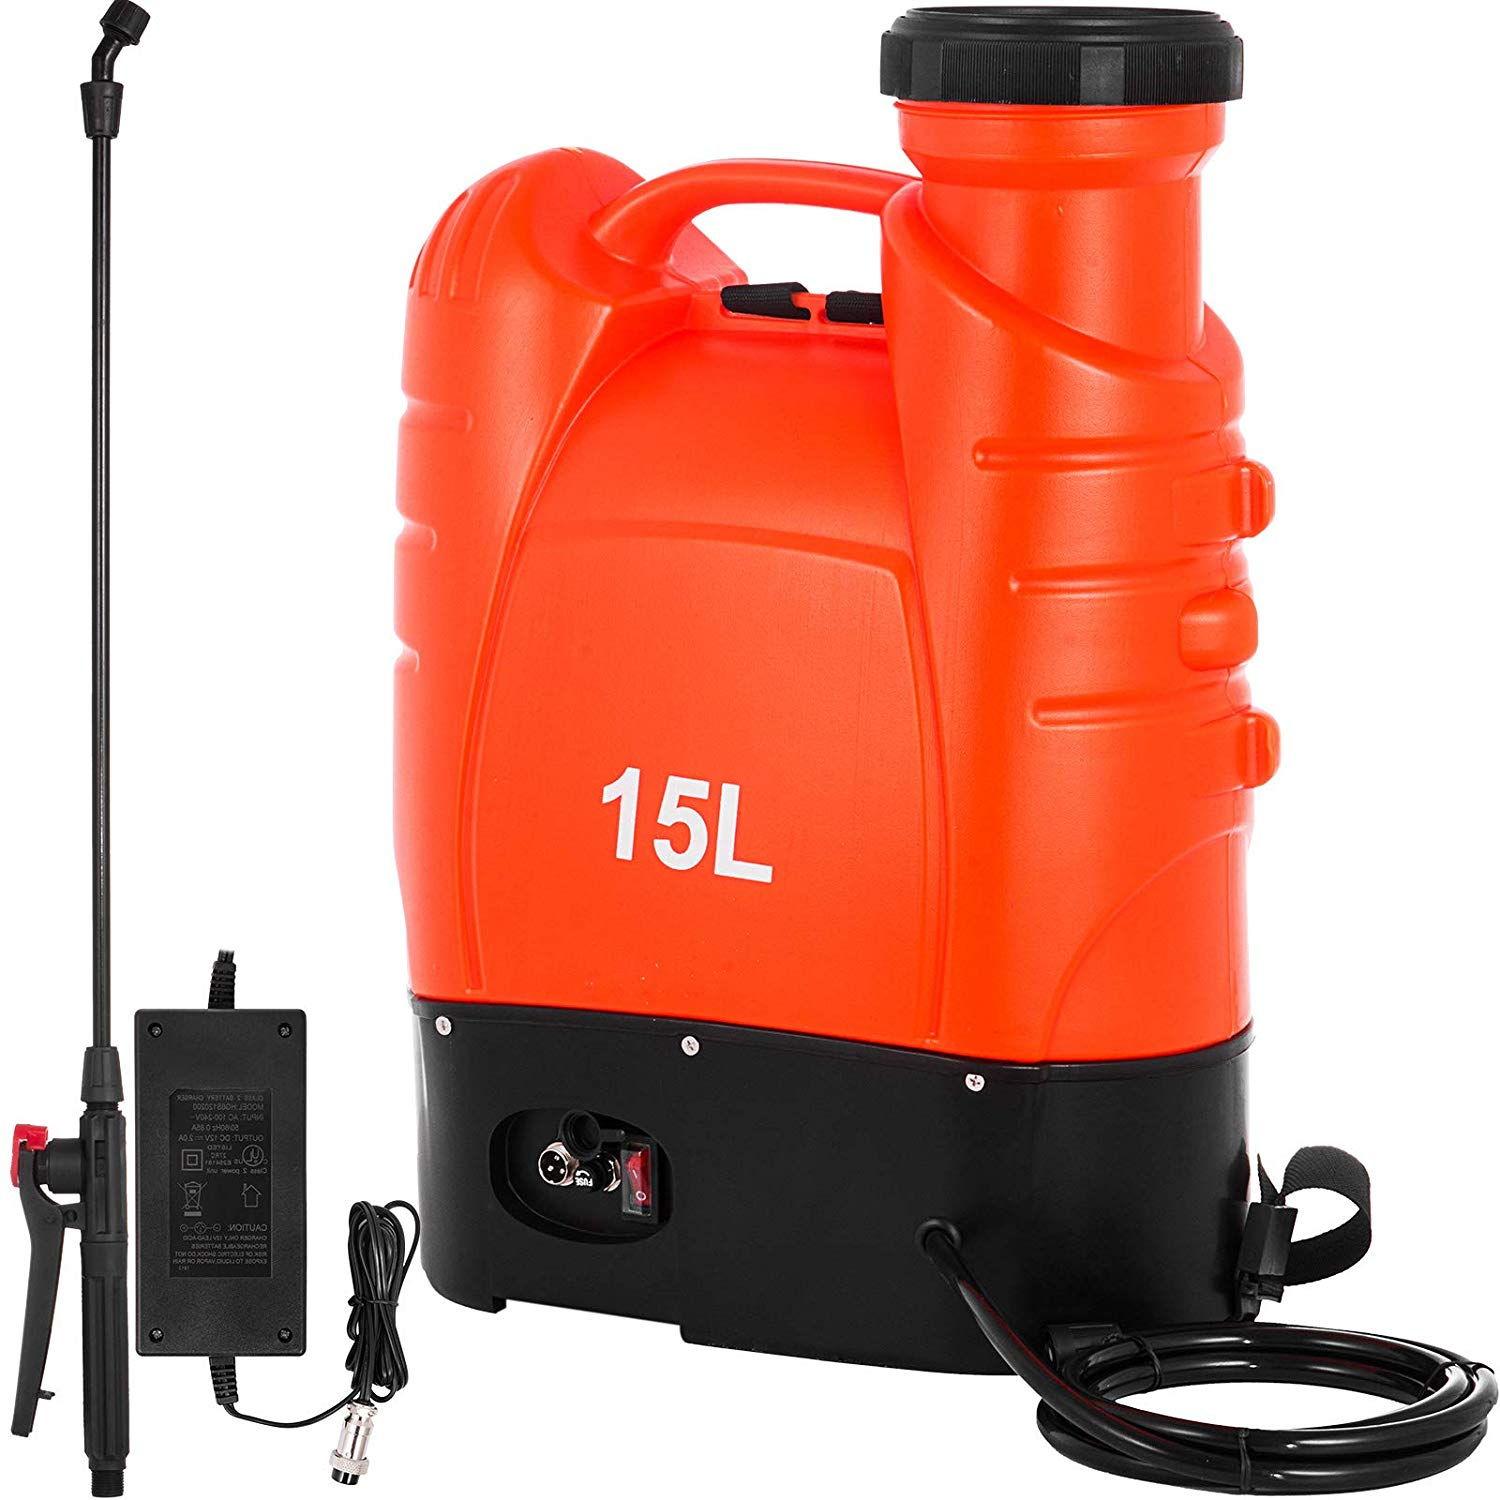 Happybuy Battery Powered Backpack Sprayer 4 Gallon